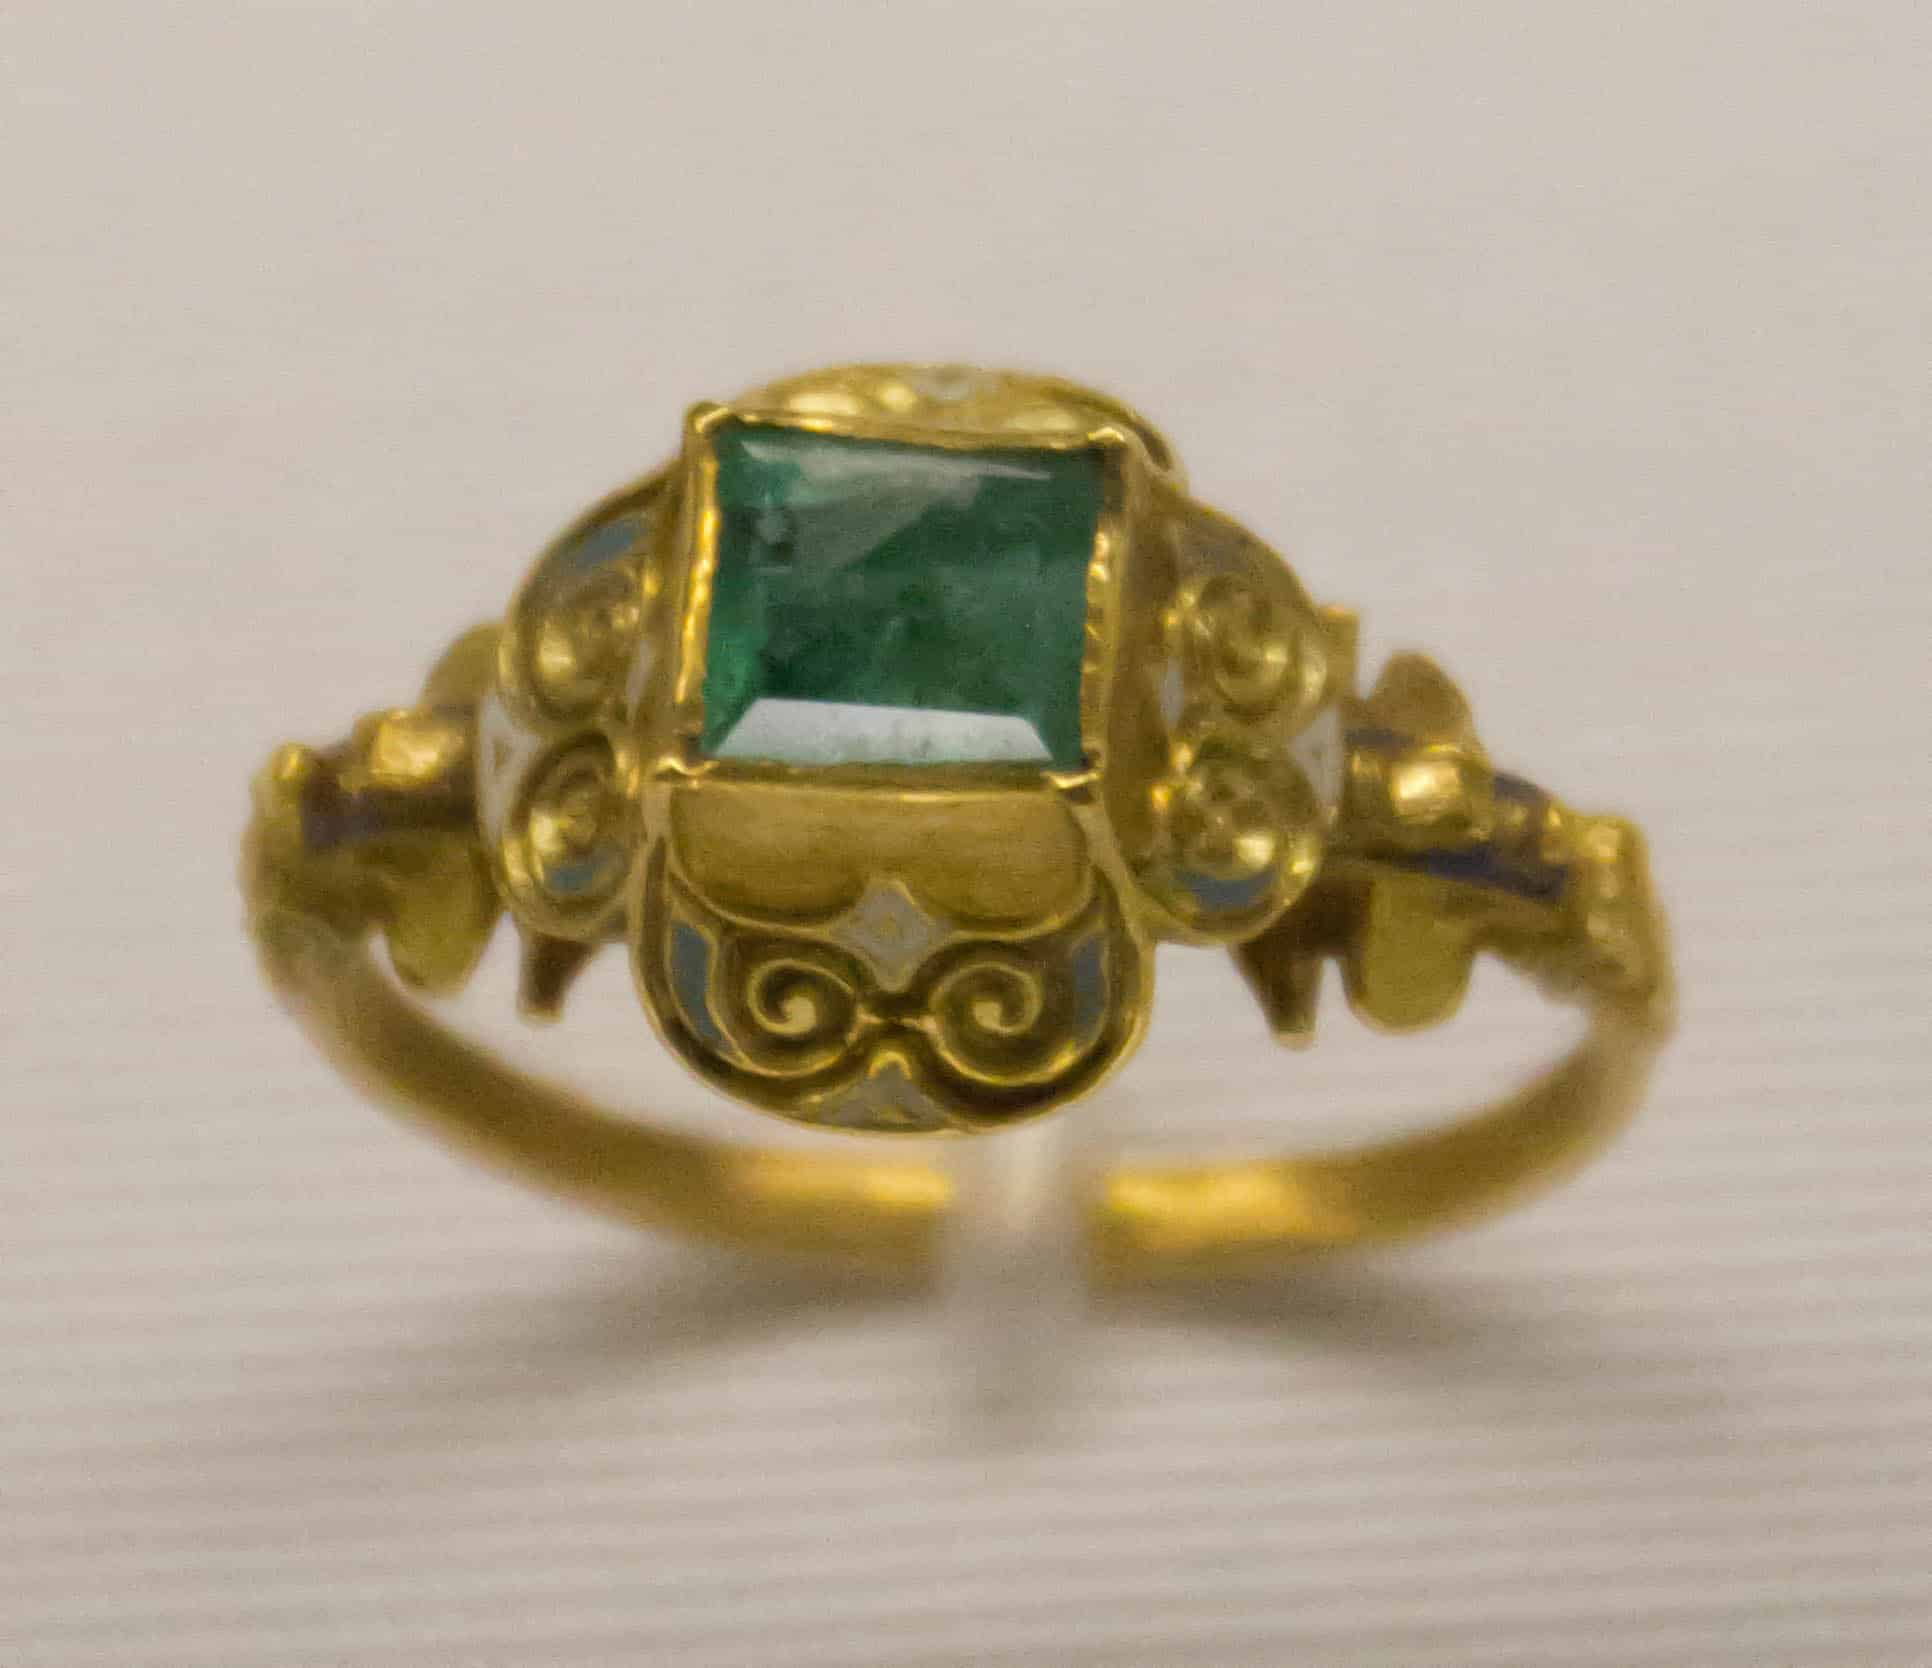 German Late 18th Cen Gold Emerald Ring.jpg